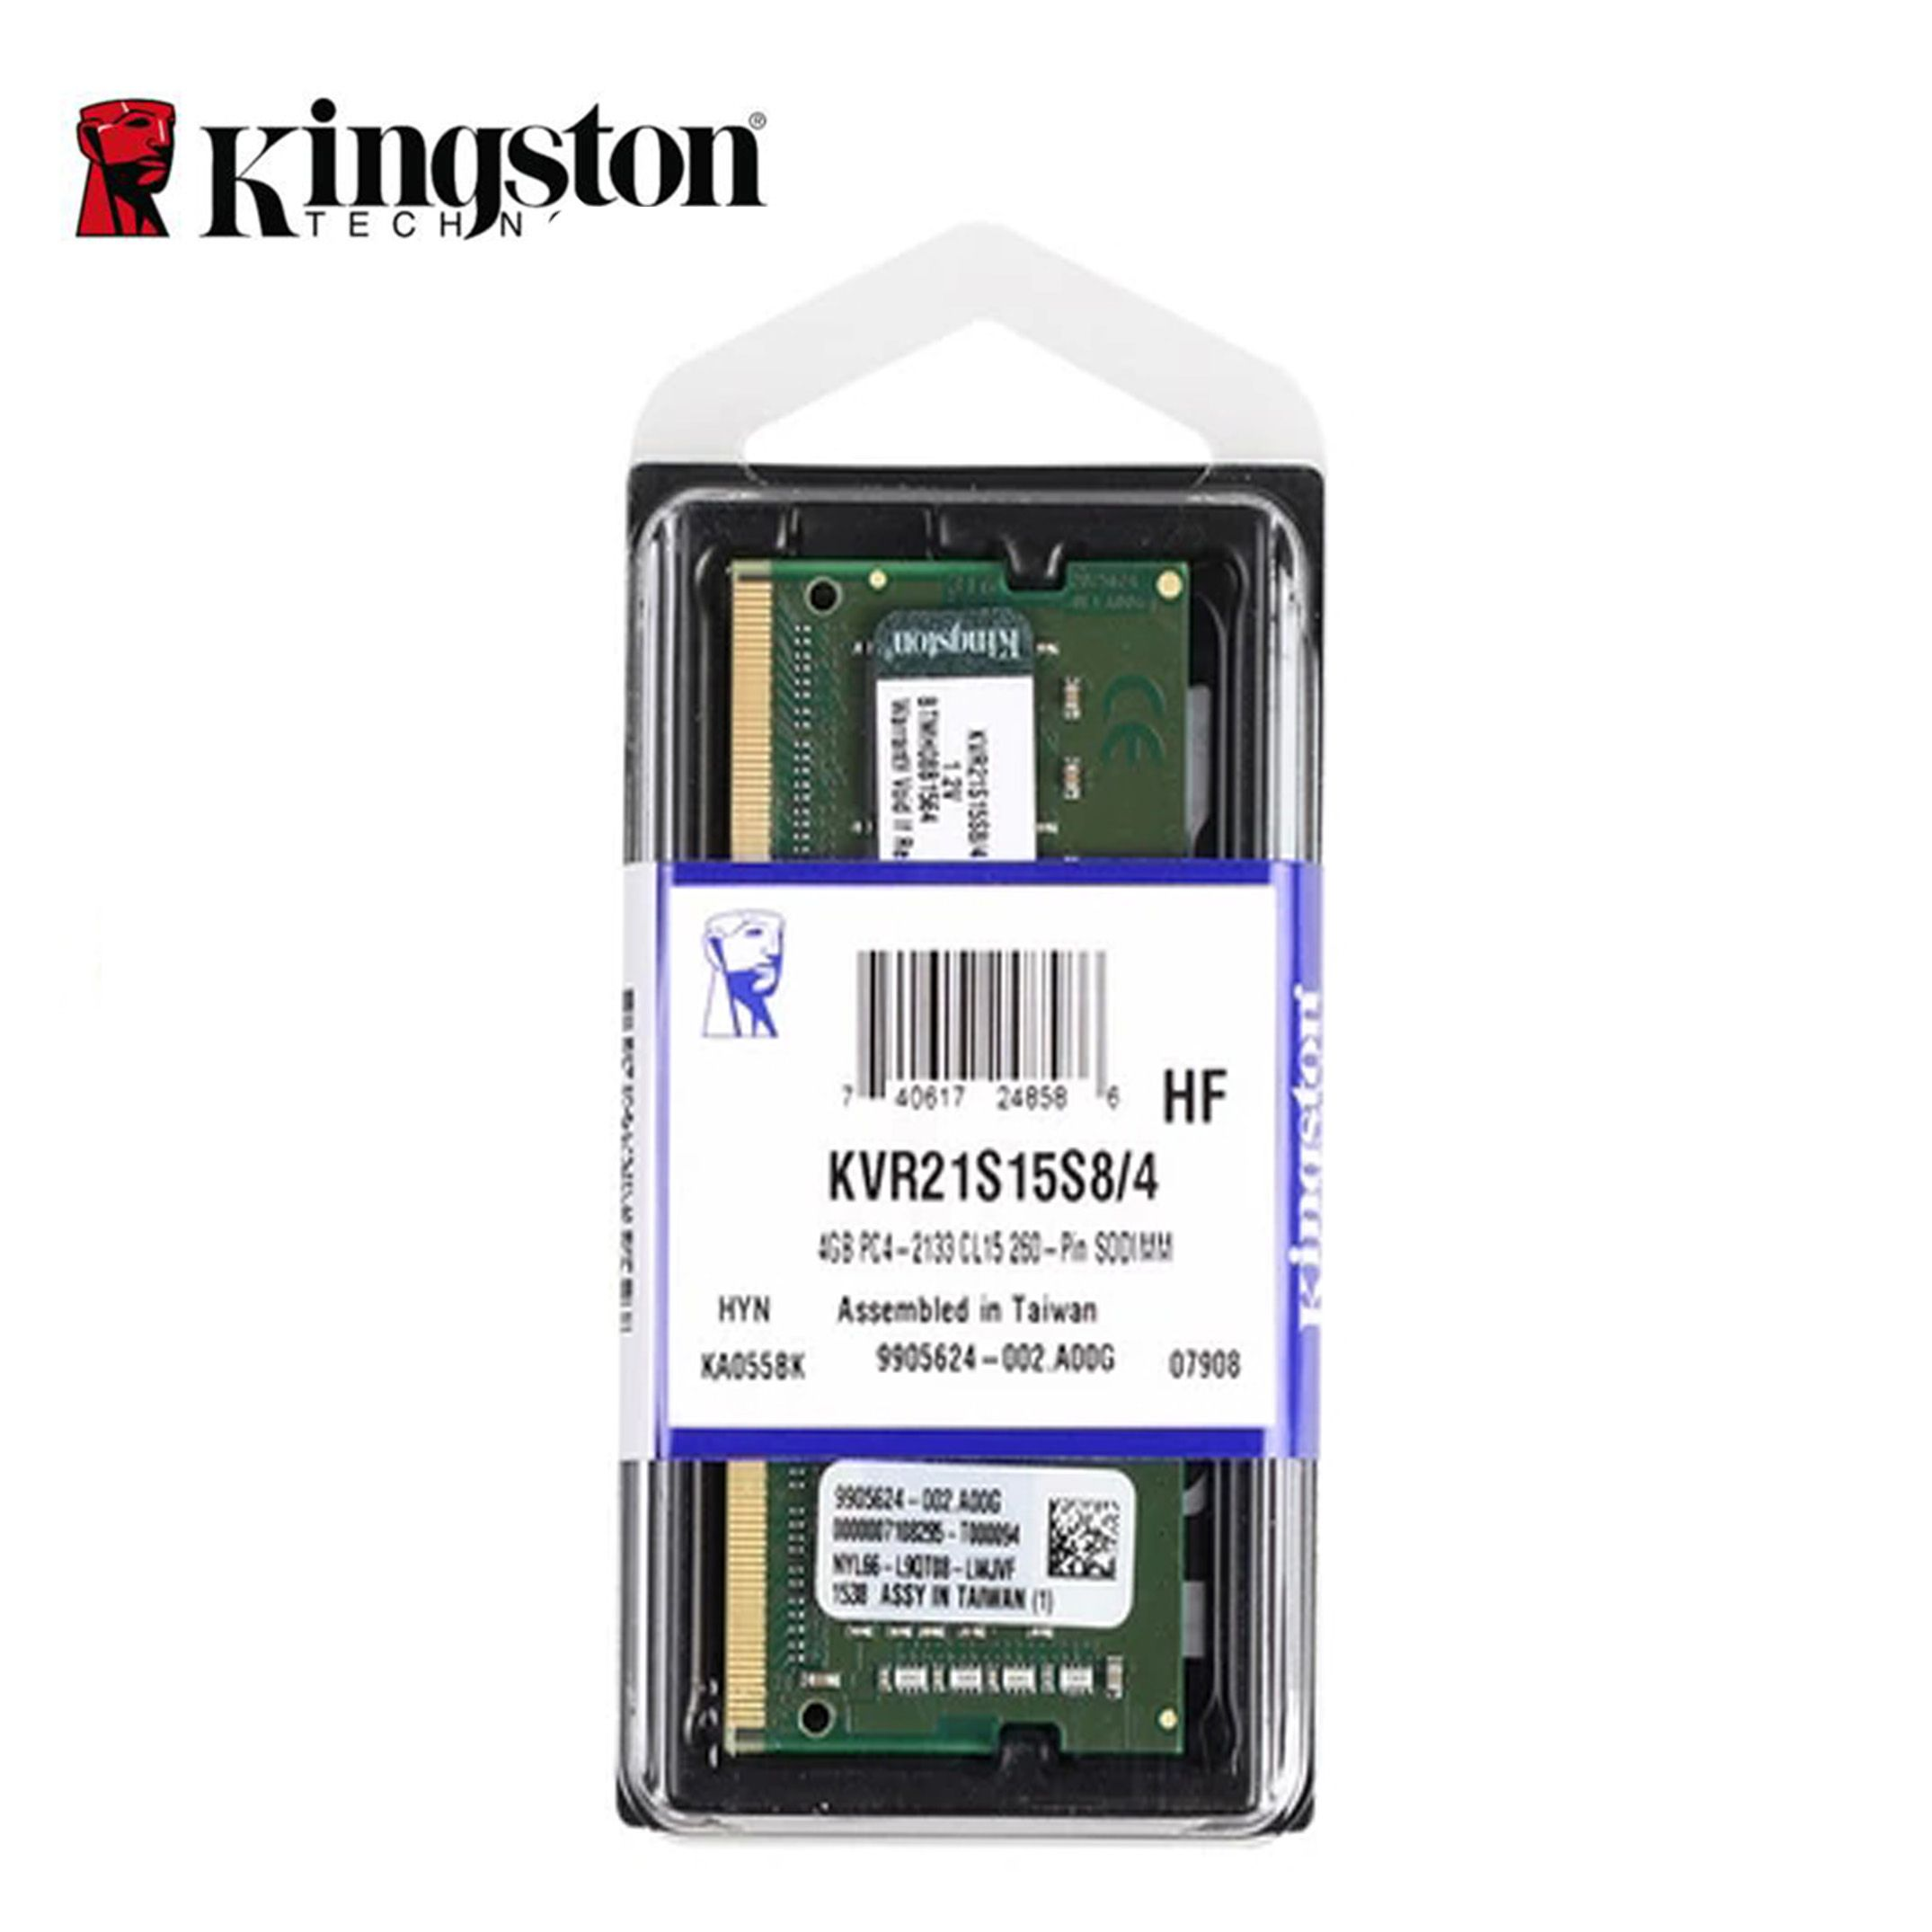 Kingston 4gb 8gb Sodimm Ddr4 Low Voltage Memory Ram 2133mhz Non Ecc V Gen Ddr3 Pc 10600 12800 Ddr3l Notebook Laptop Cl15 260 Pin 1rx8 For